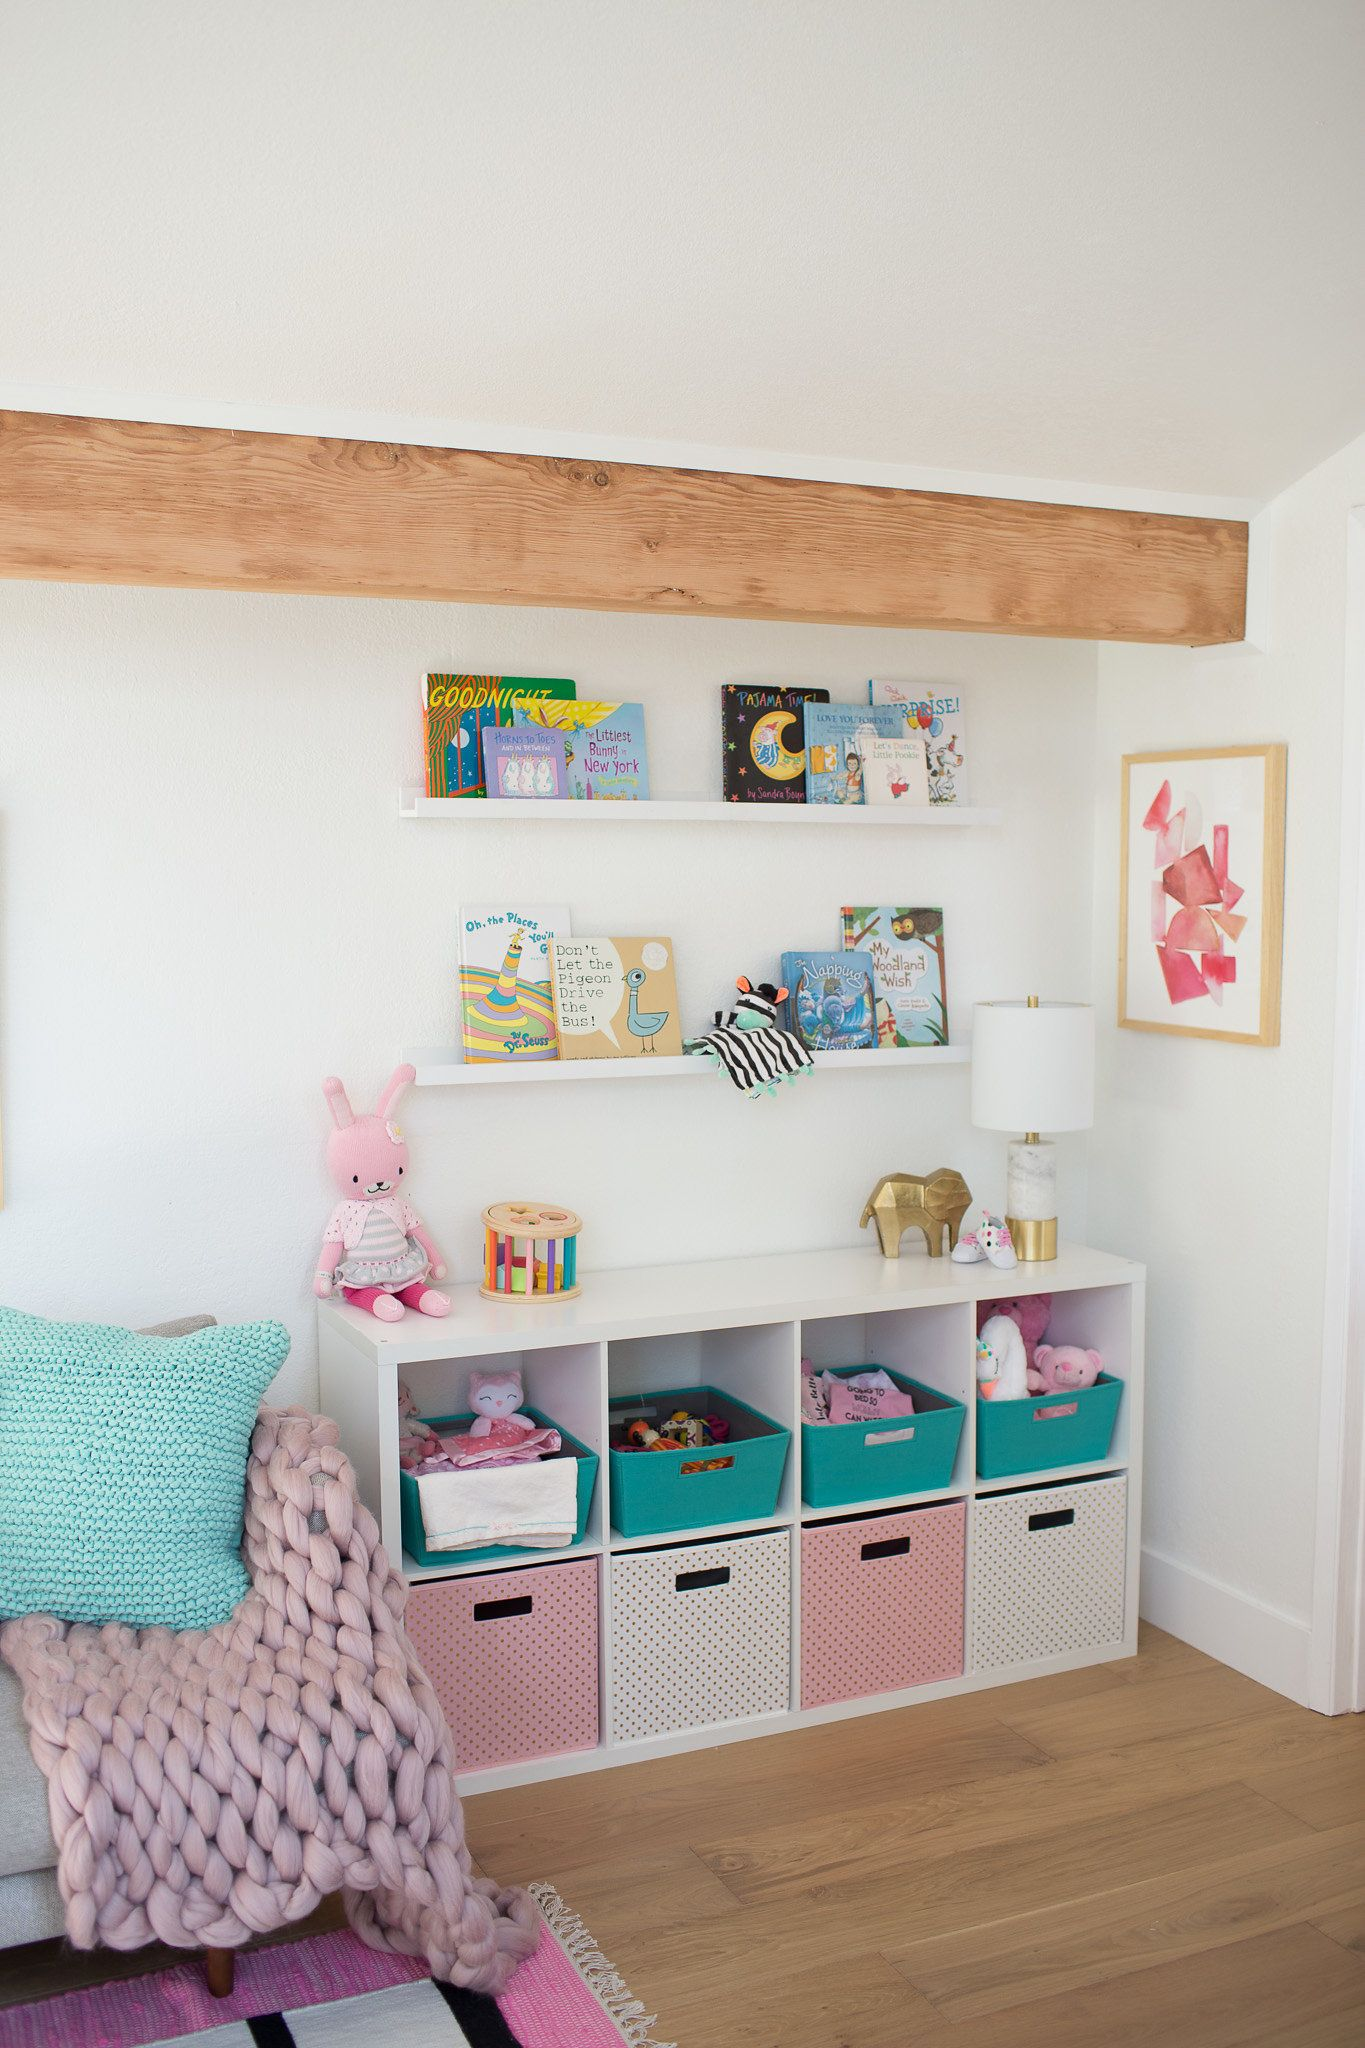 A Cotton Candy Kids Room For Two Kismet House Room For Two Kids Room Door Design Kids Room